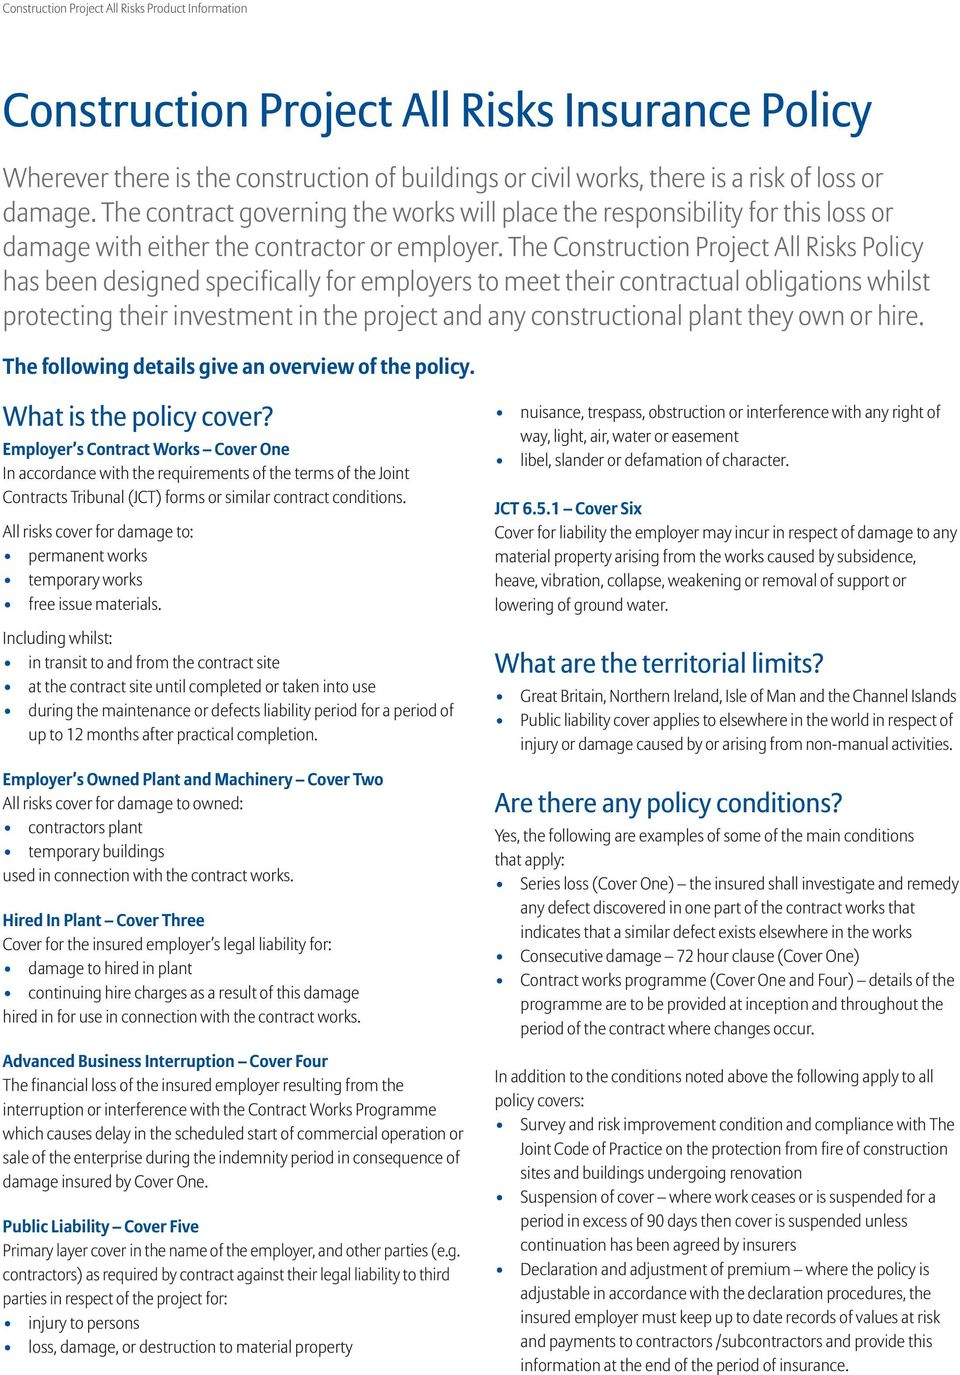 The Construction Project All Risks Policy has been designed specifically for employers to meet their contractual obligations whilst protecting their investment in the project and any constructional